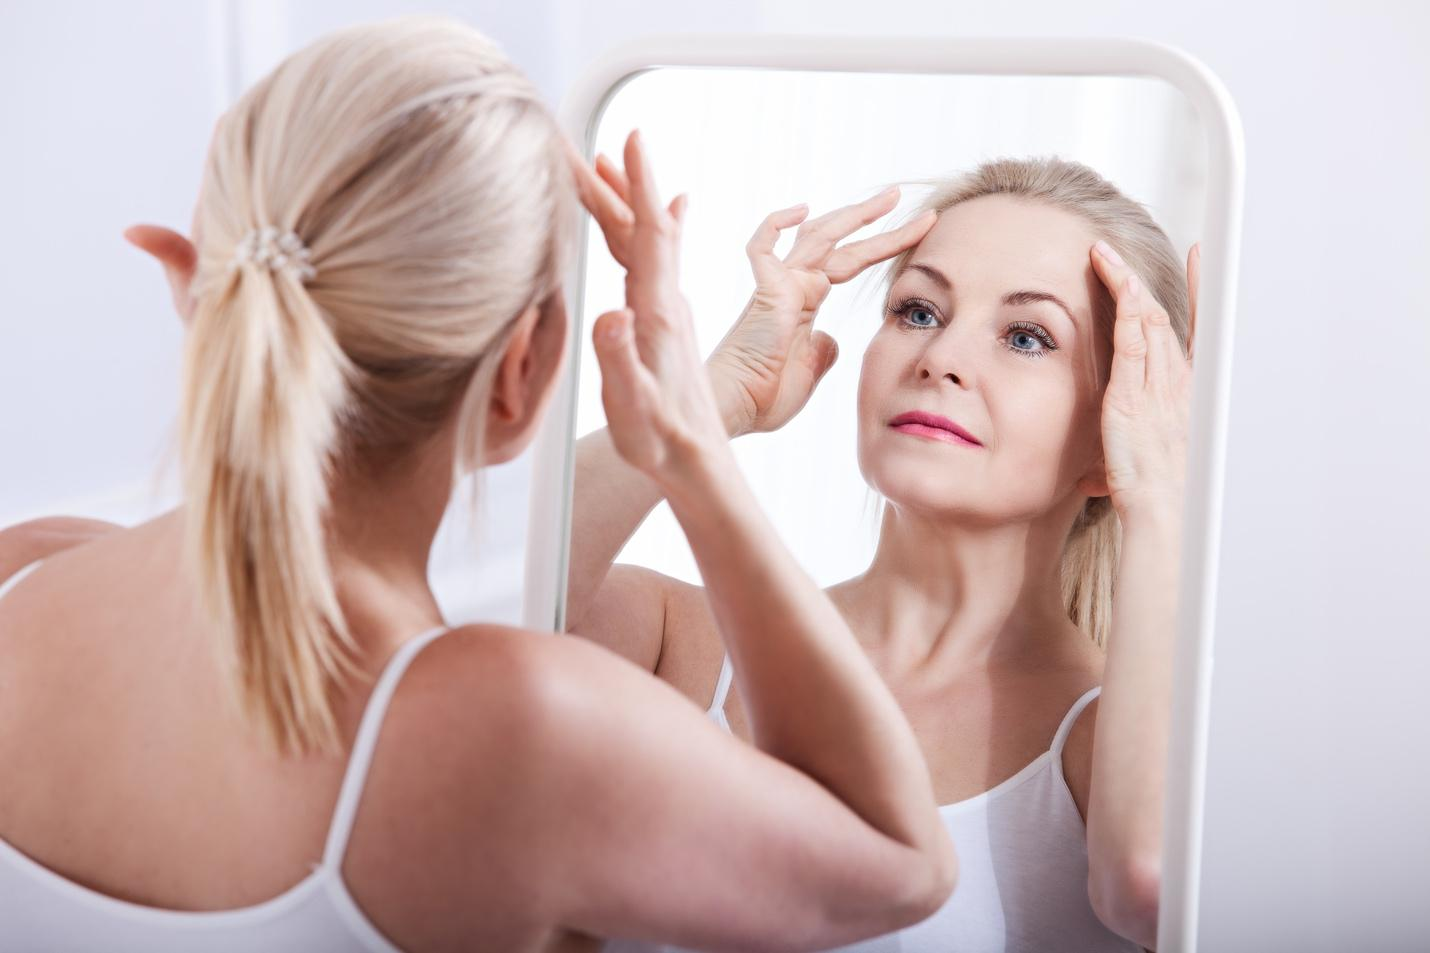 A facelift can take years off your face